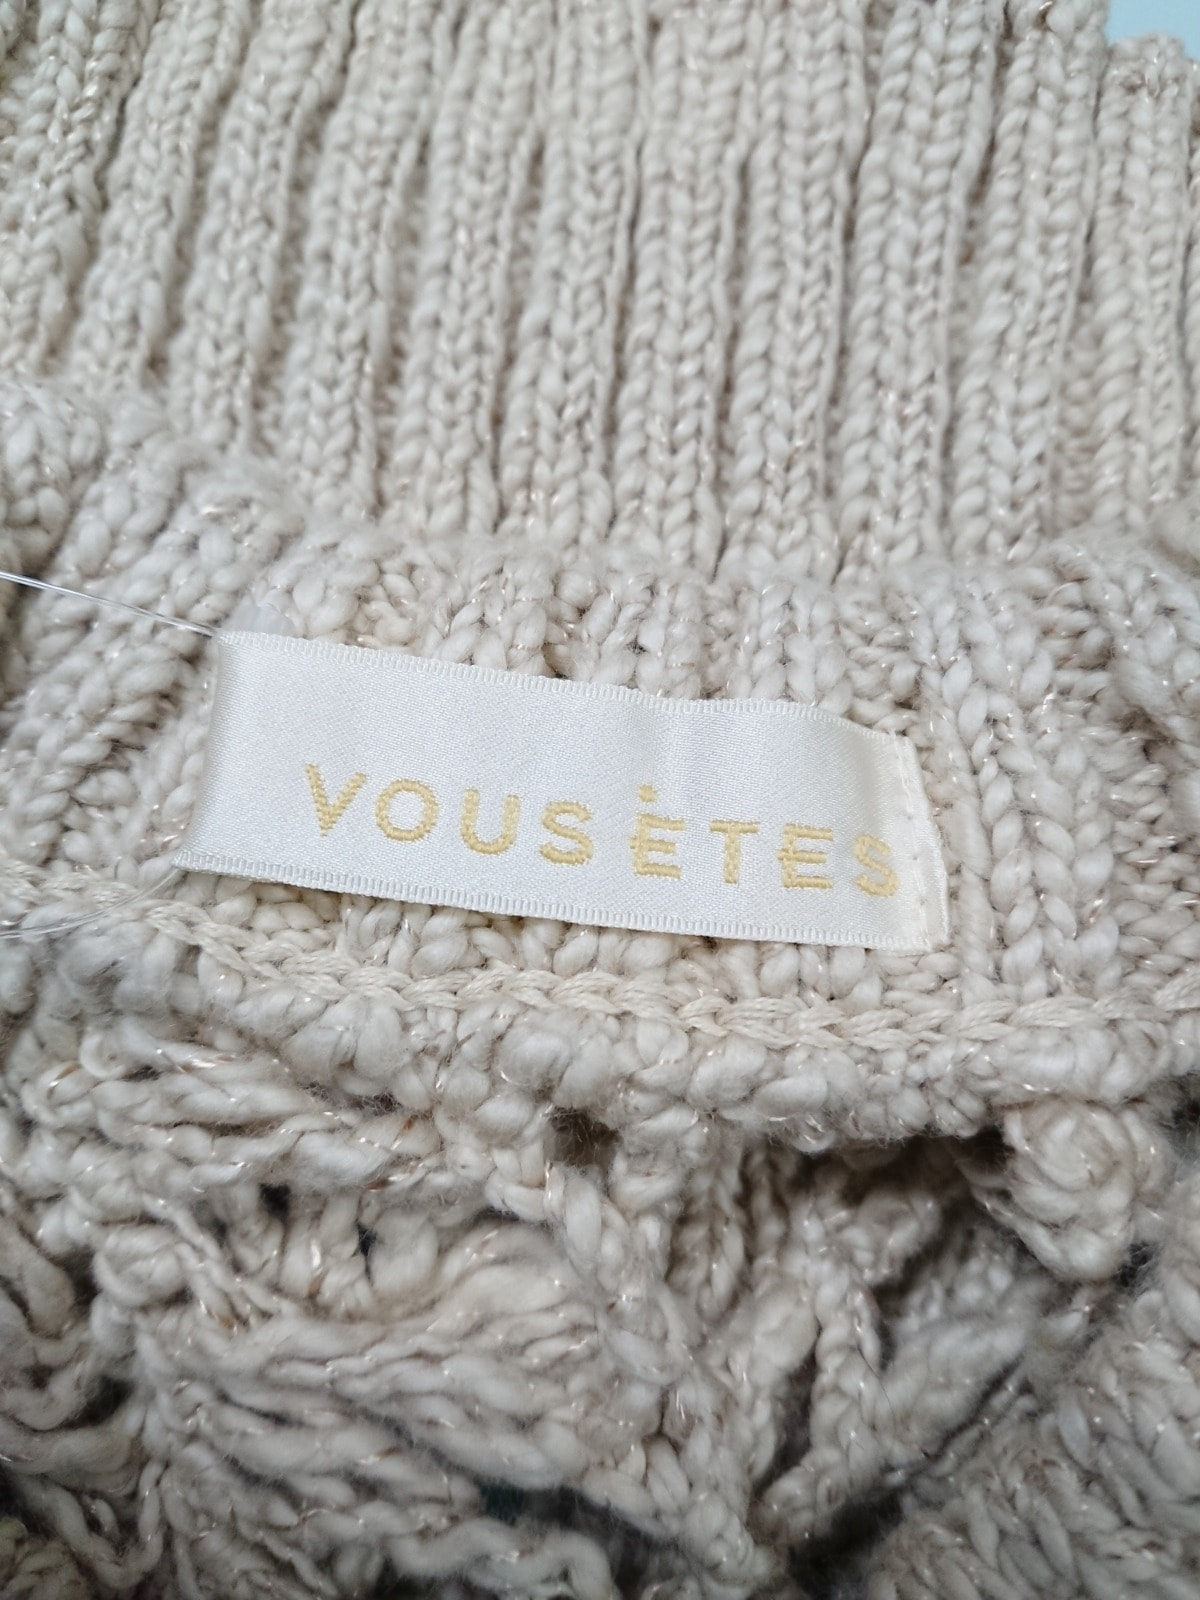 VOUS ETES(ヴゼット)のセーター